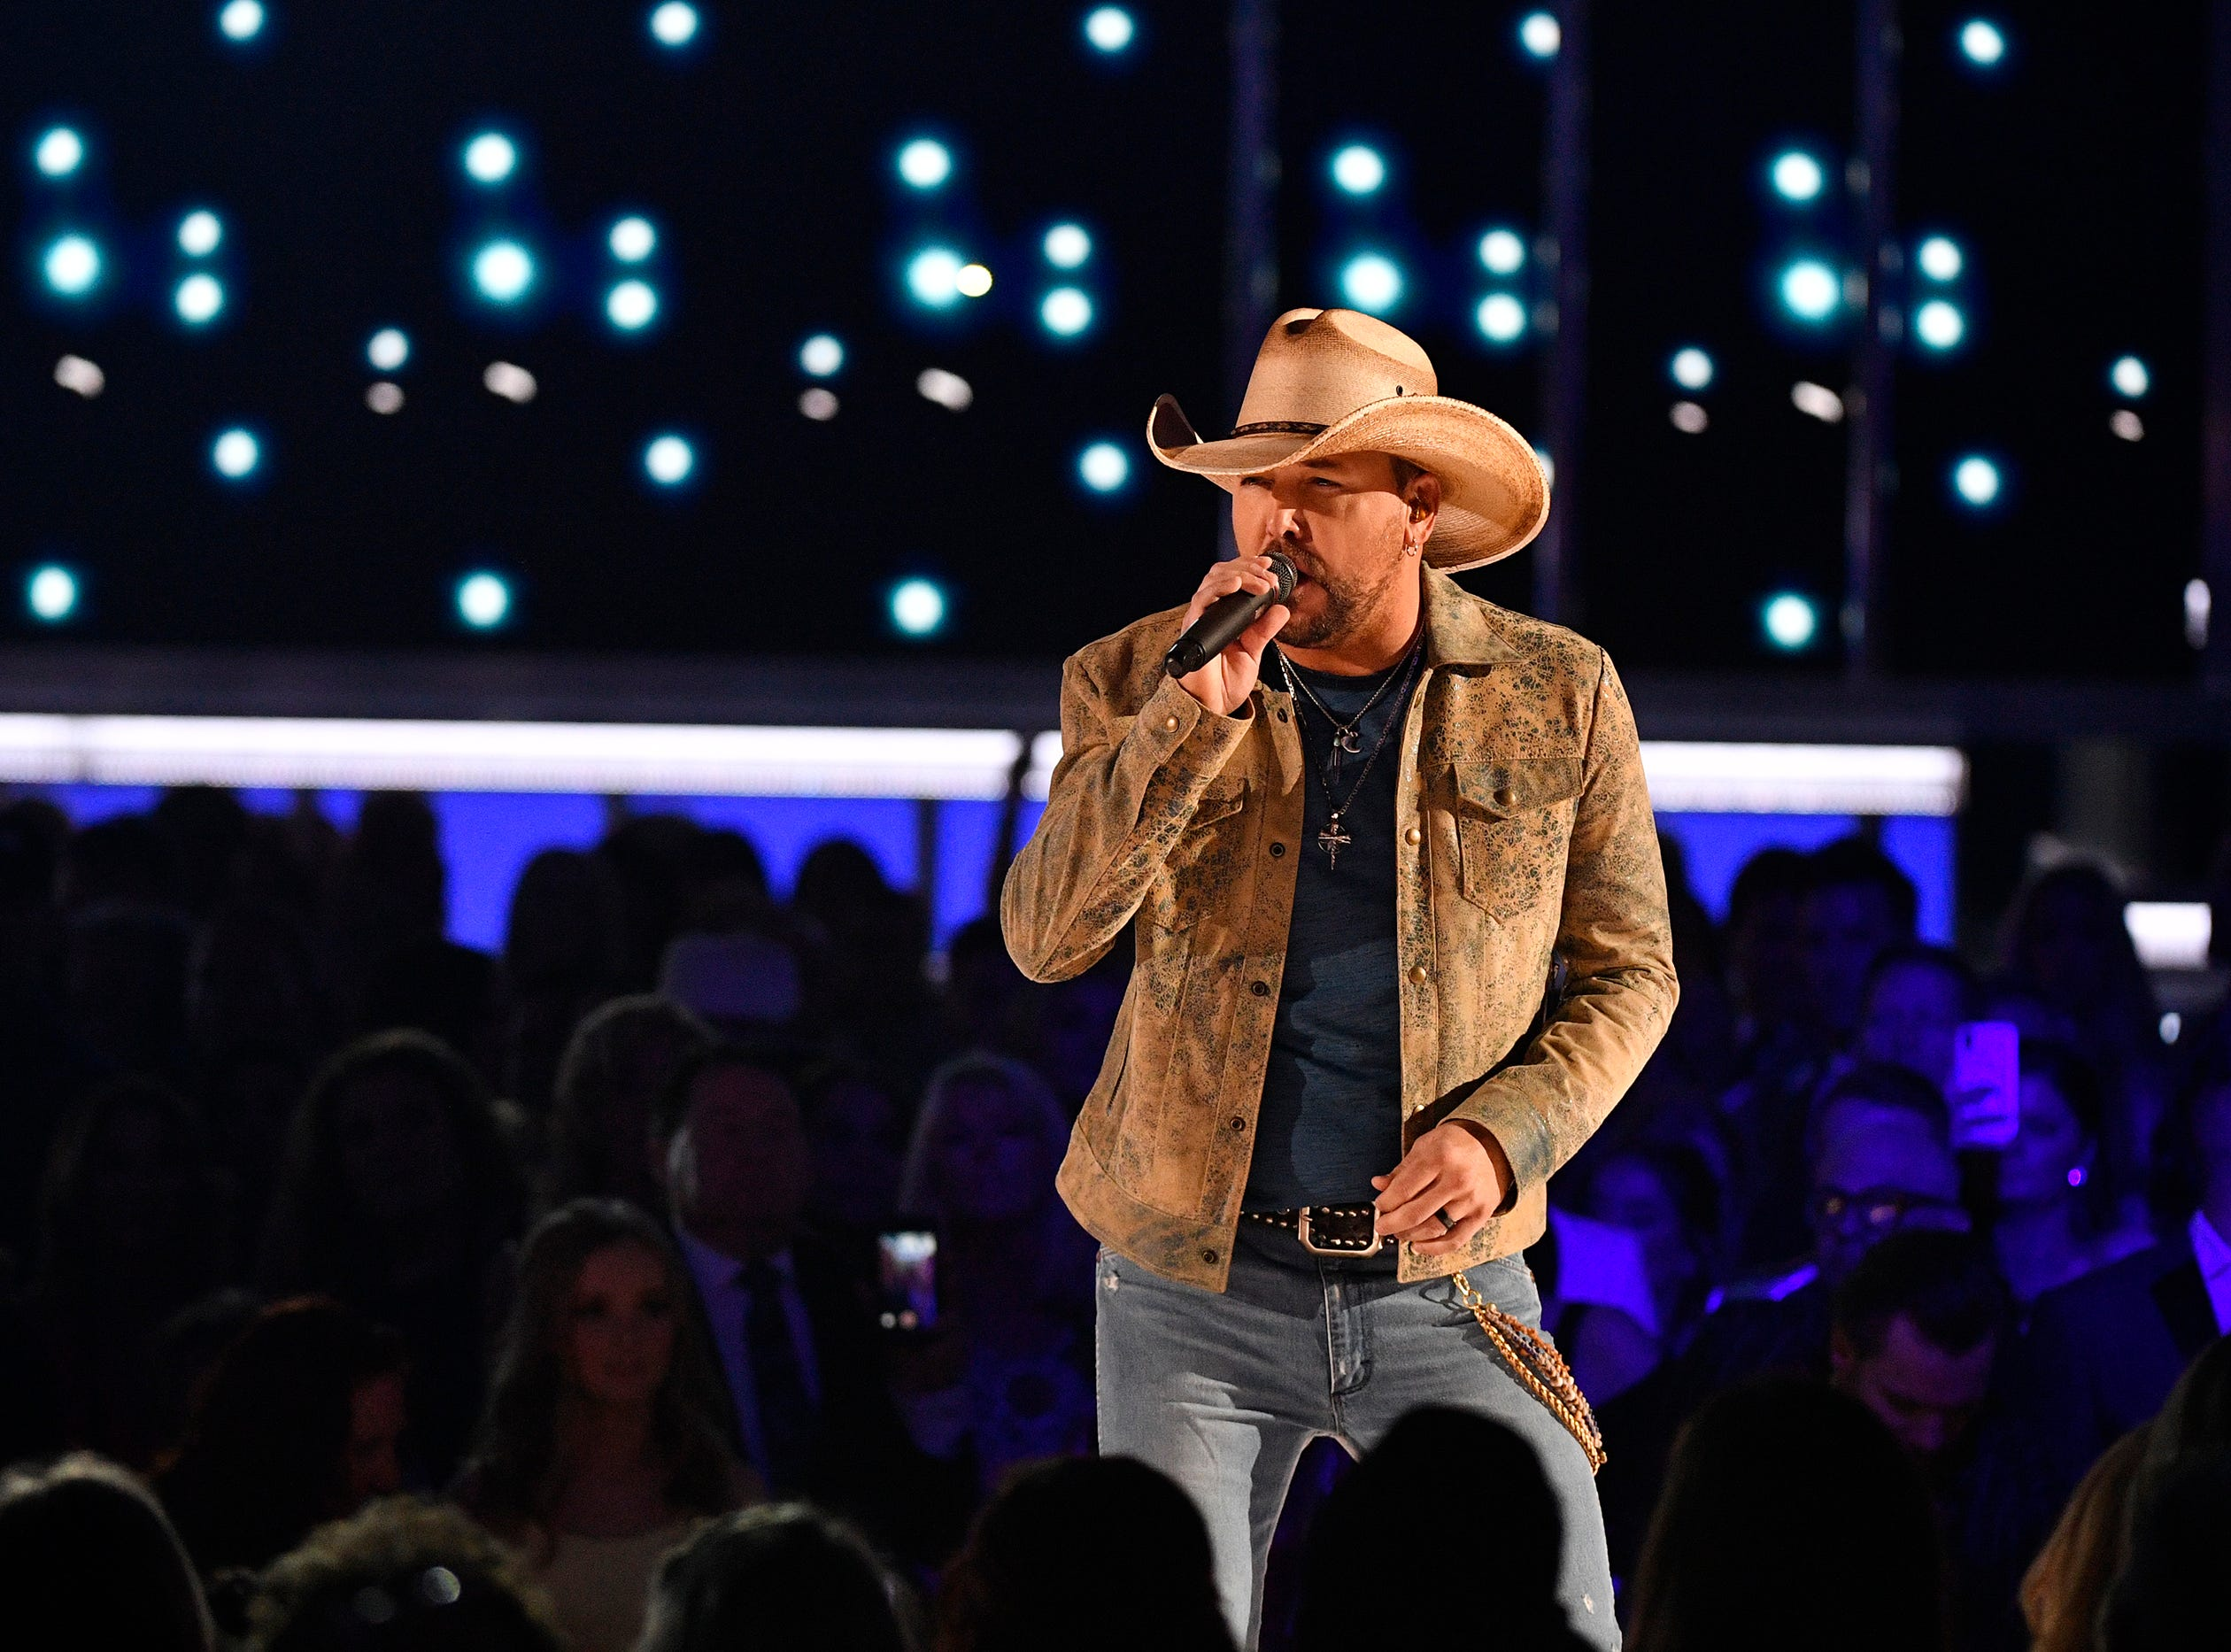 Jason Aldean performs during the 54TH Academy of Country Music Awards Sunday, April 7, 2019, in Las Vegas, Nev.